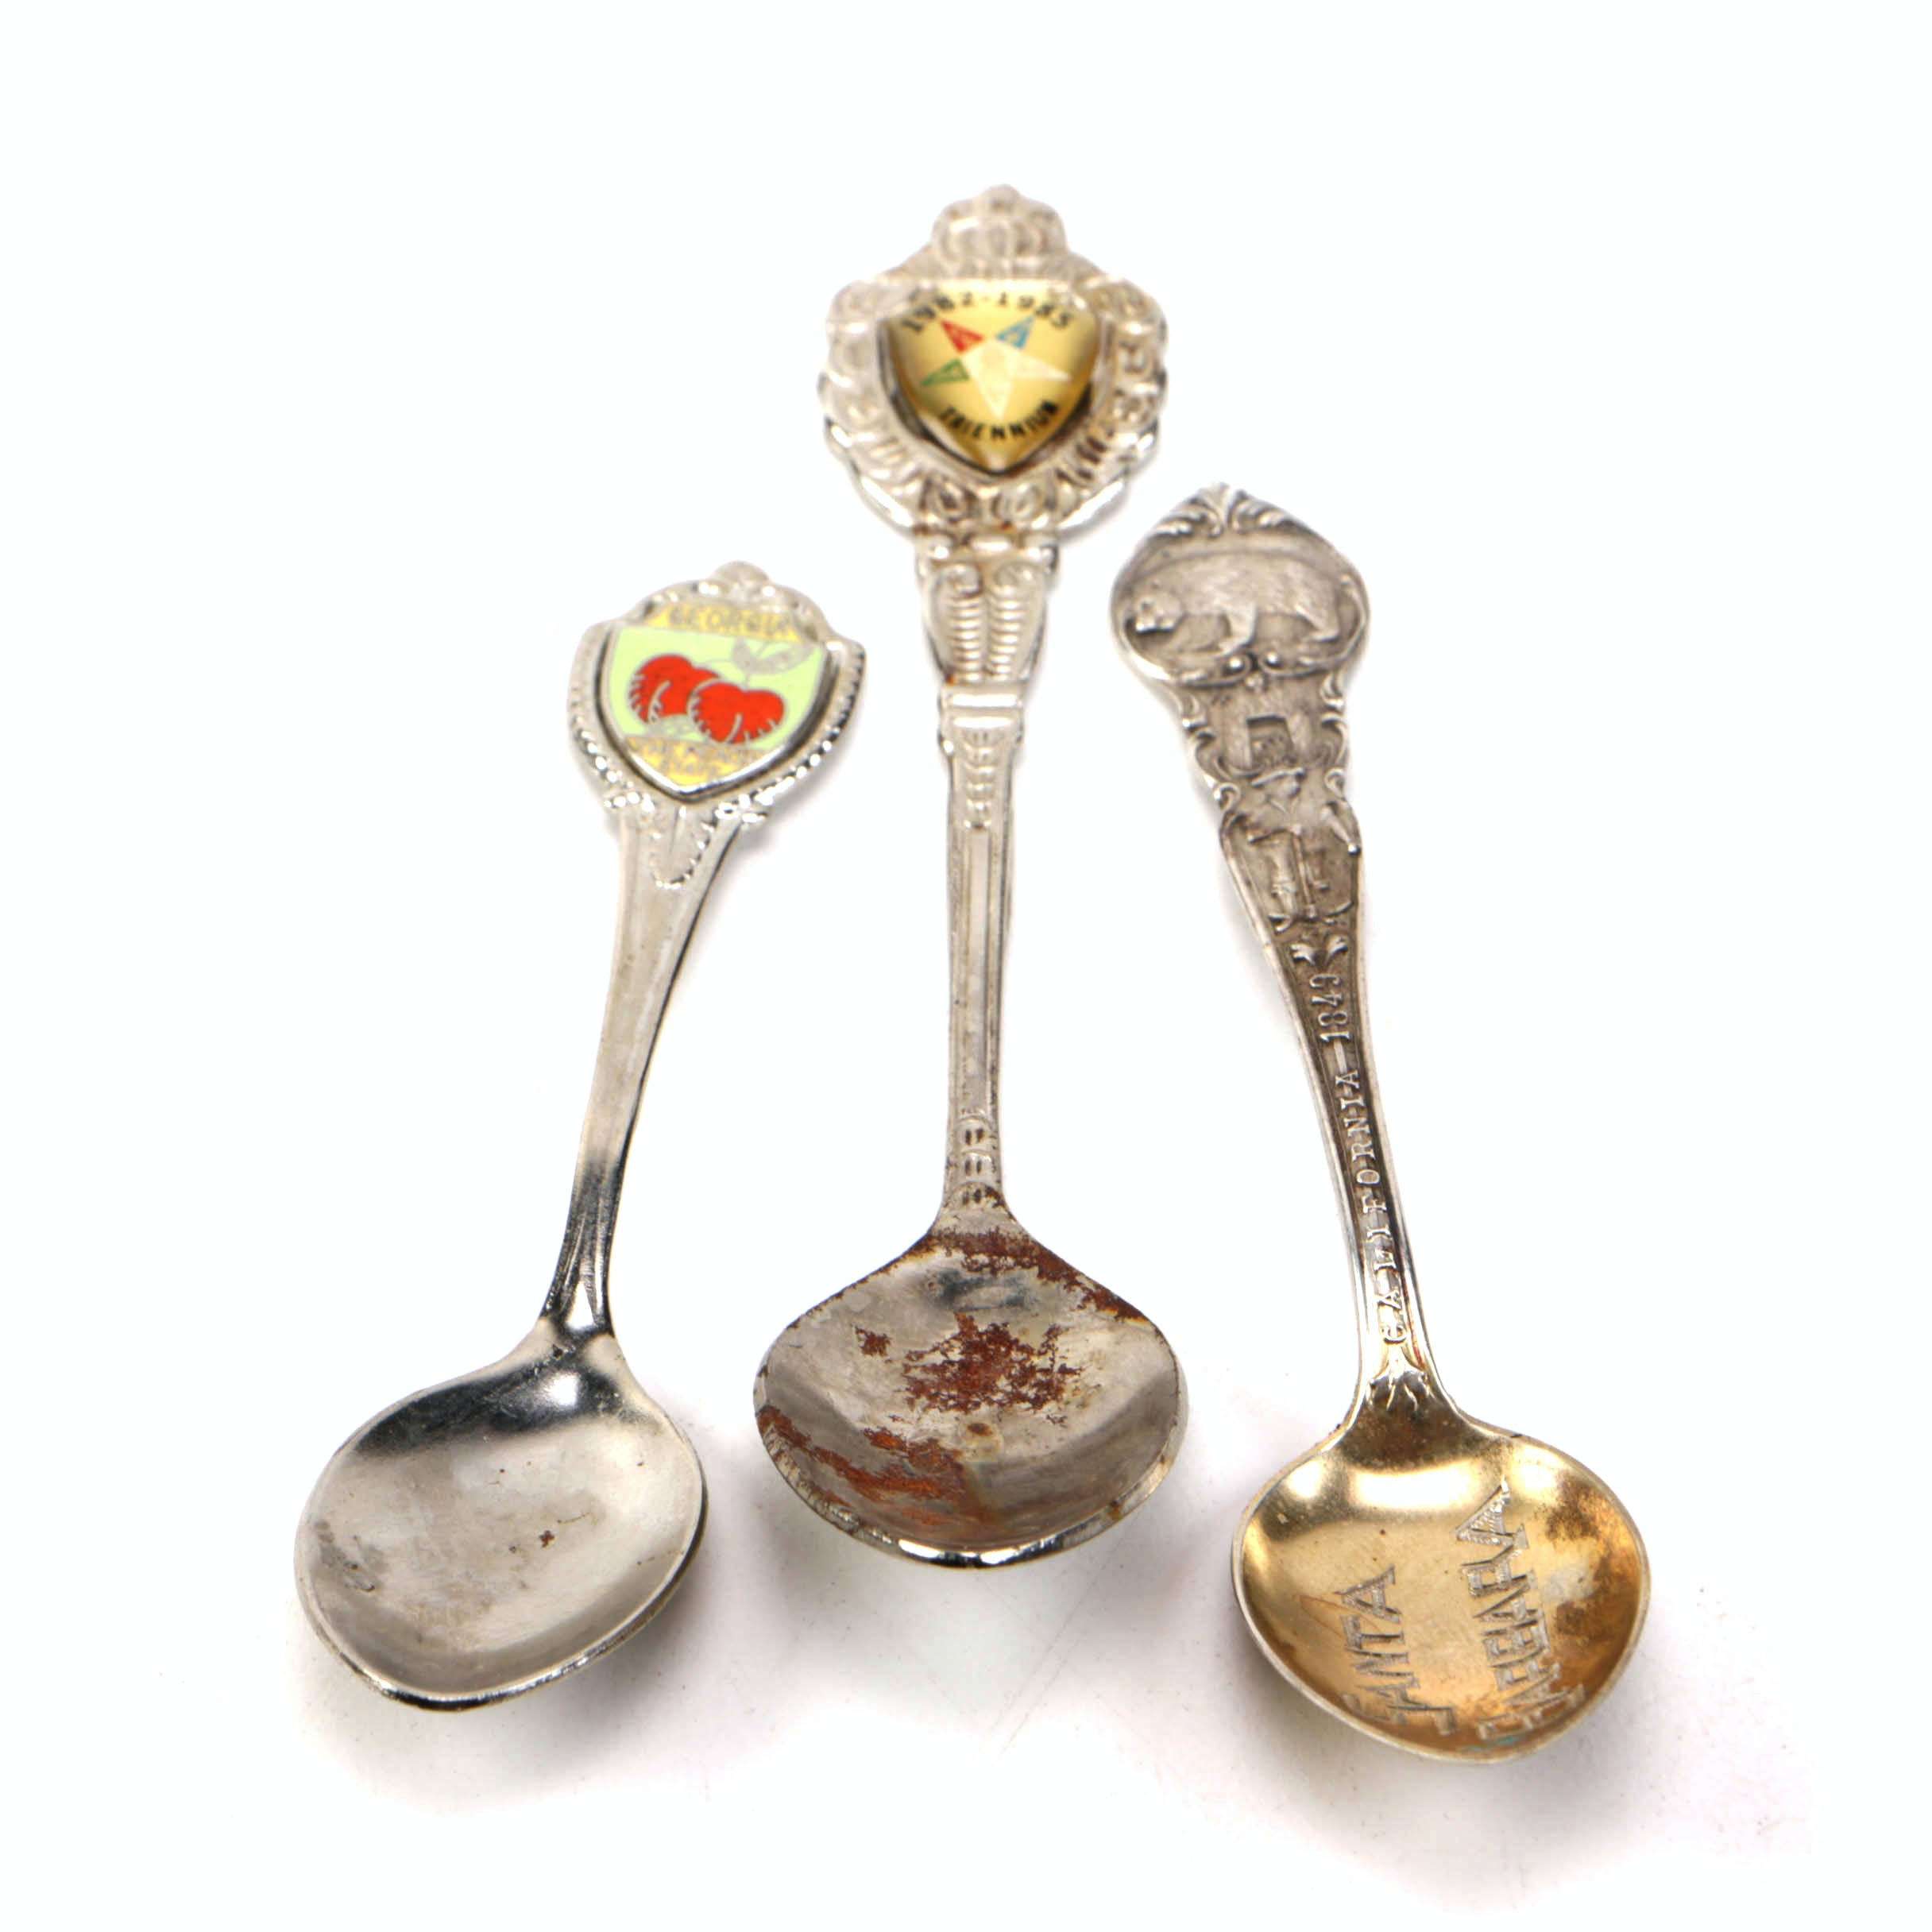 """Mechanics Sterling """"Santa Barbara"""" Souvenir Spoon and Other Collectible Spoons"""